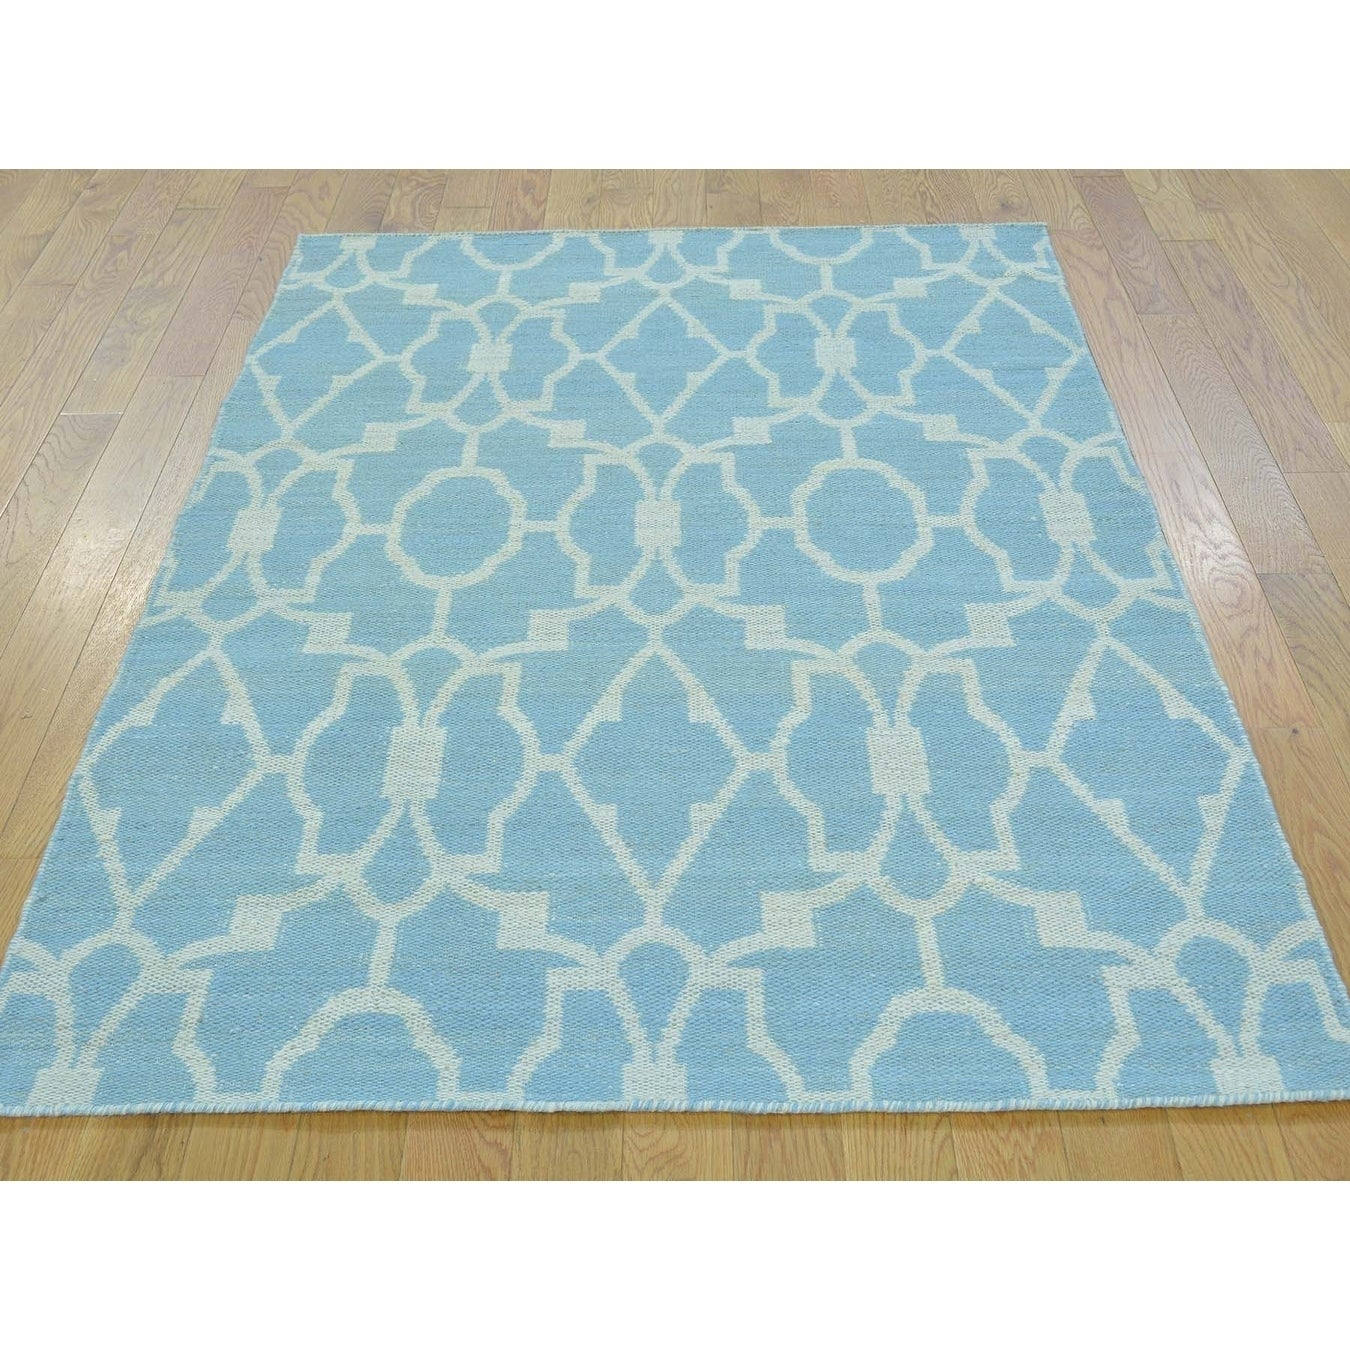 Hand Knotted Blue Flat Weave with Cotton Oriental Rug - 38 x 54